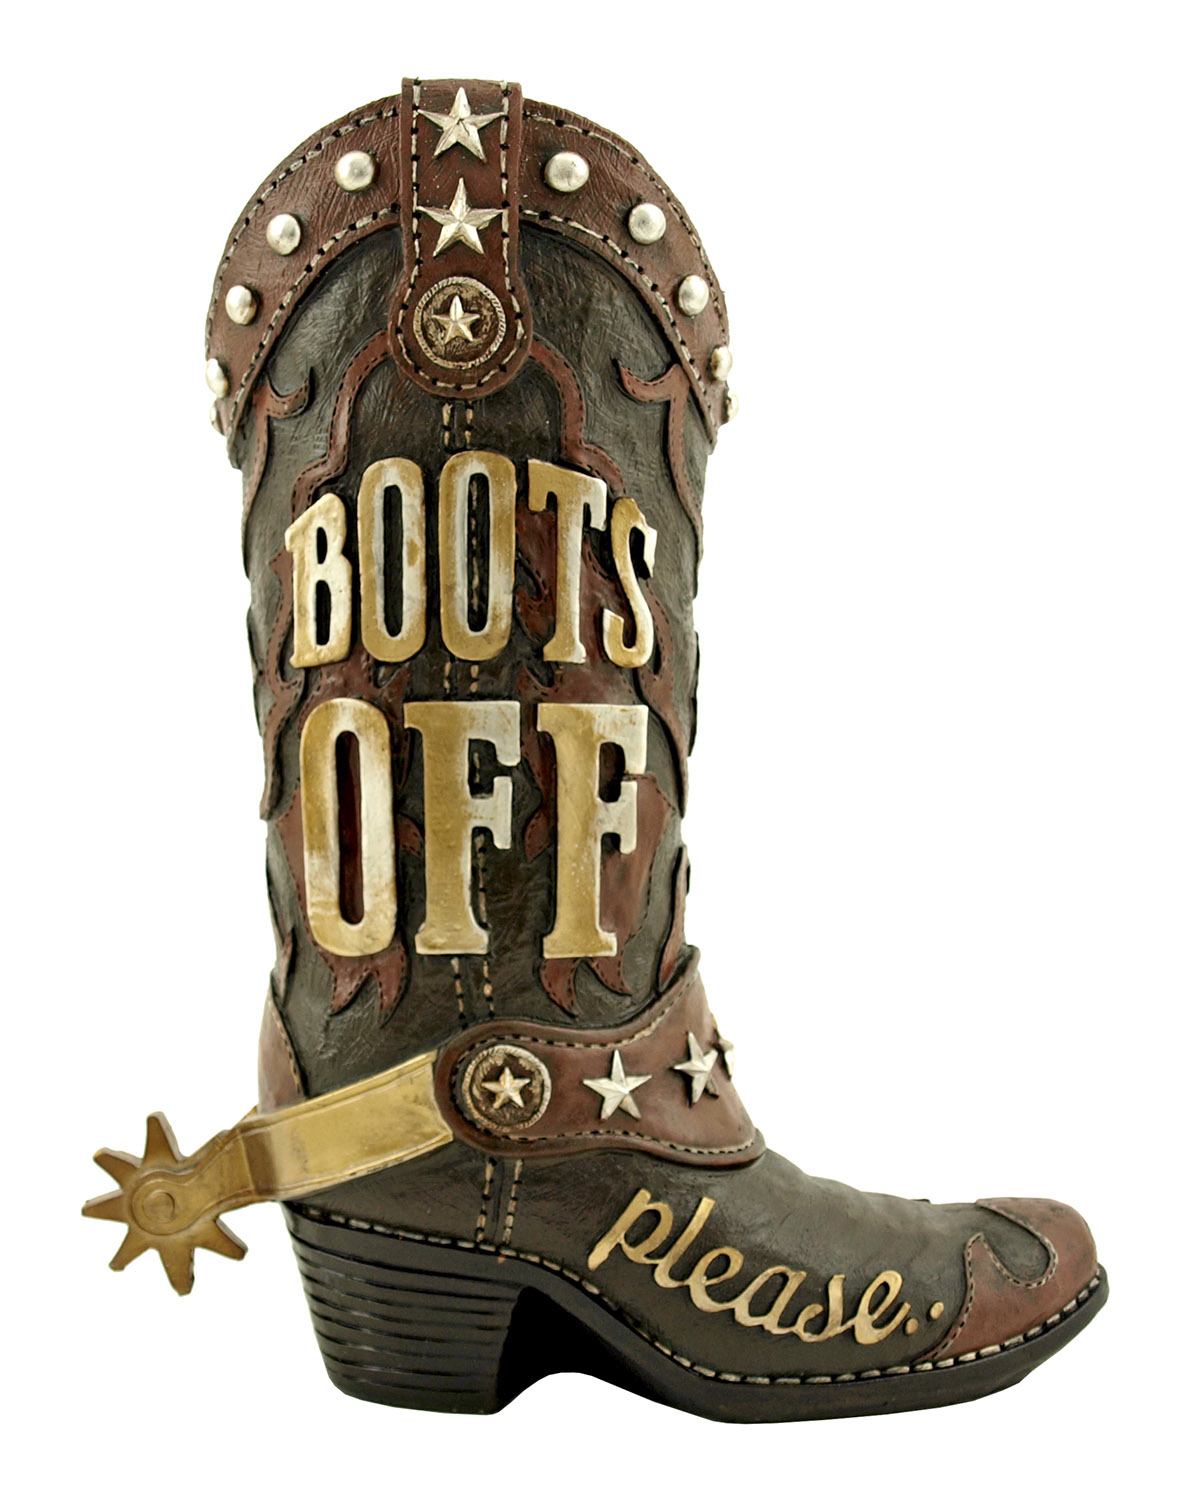 Take Yer Boots Off - Cowboy Boot Door Greeting Statue - DWK